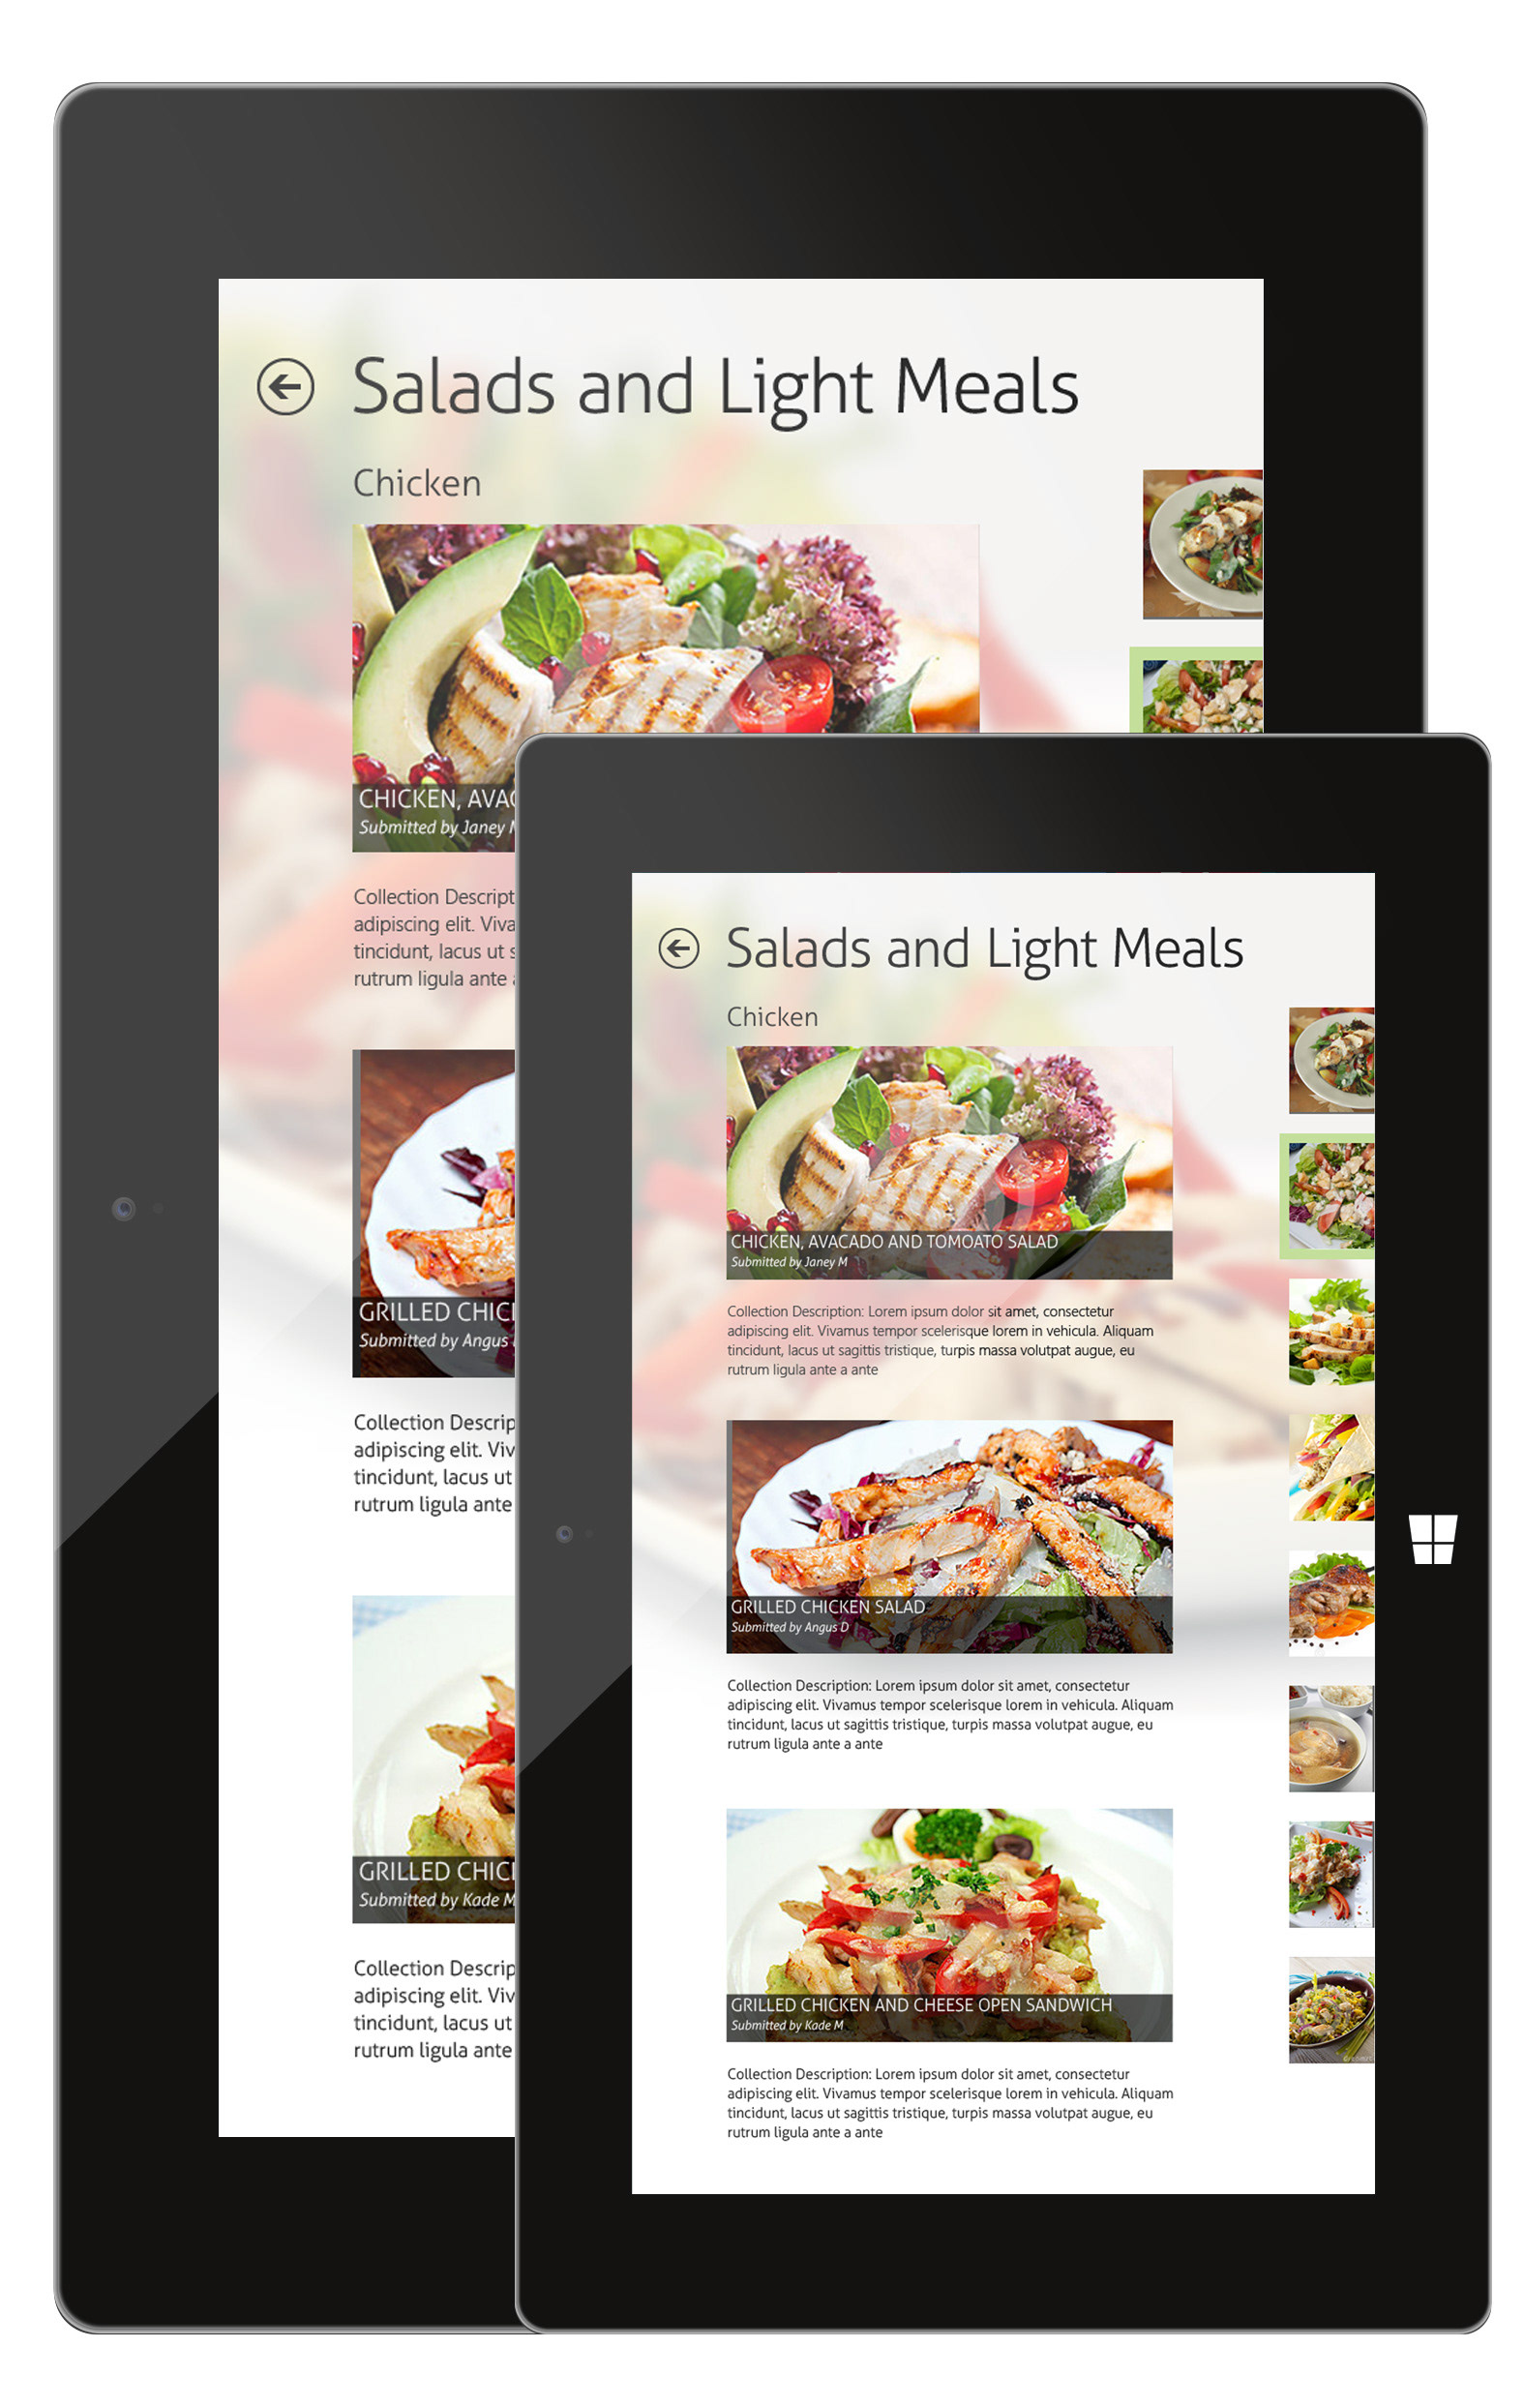 Kit powell ui and ux designer windows 8 recipe app concept you may also like forumfinder Gallery